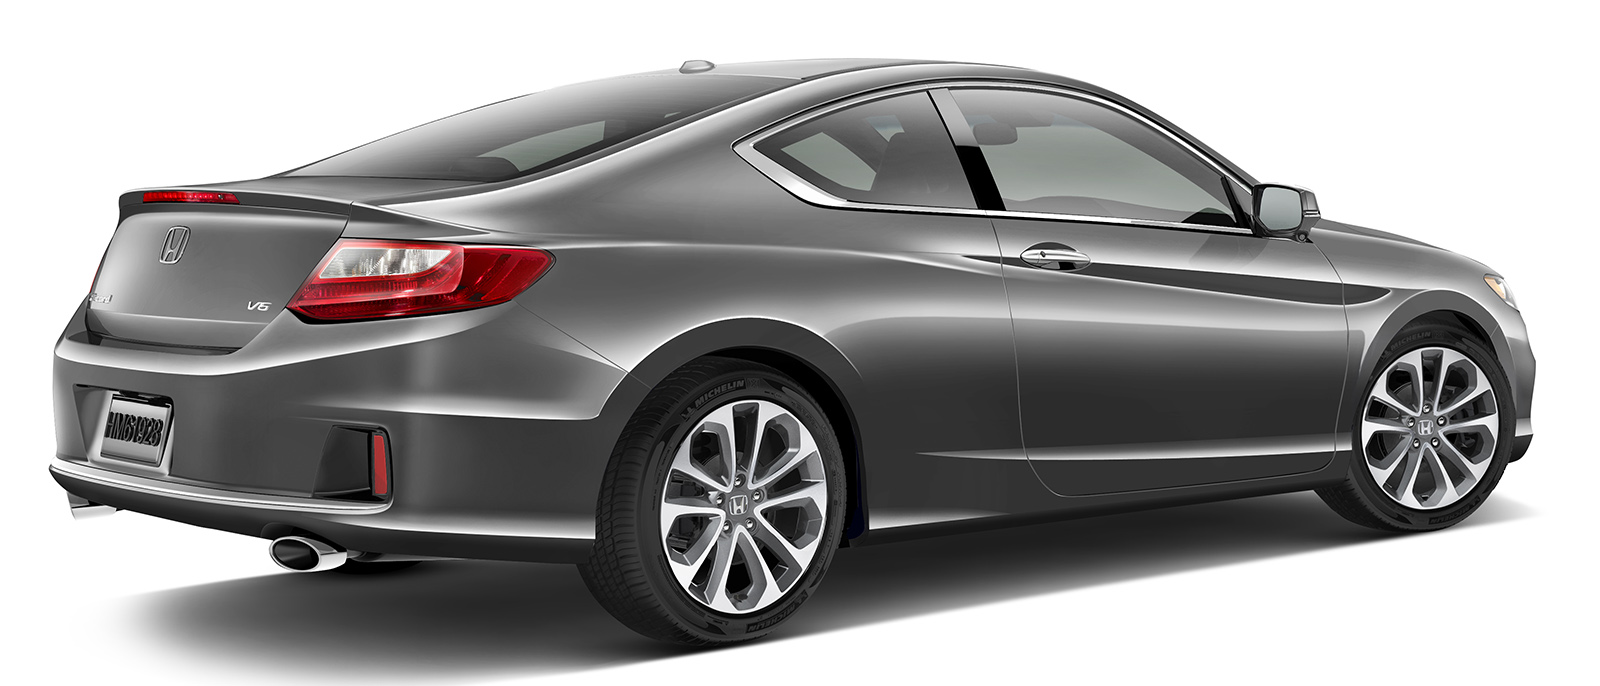 2015 Honda Accord Coupe Raynham Easton Silko Honda